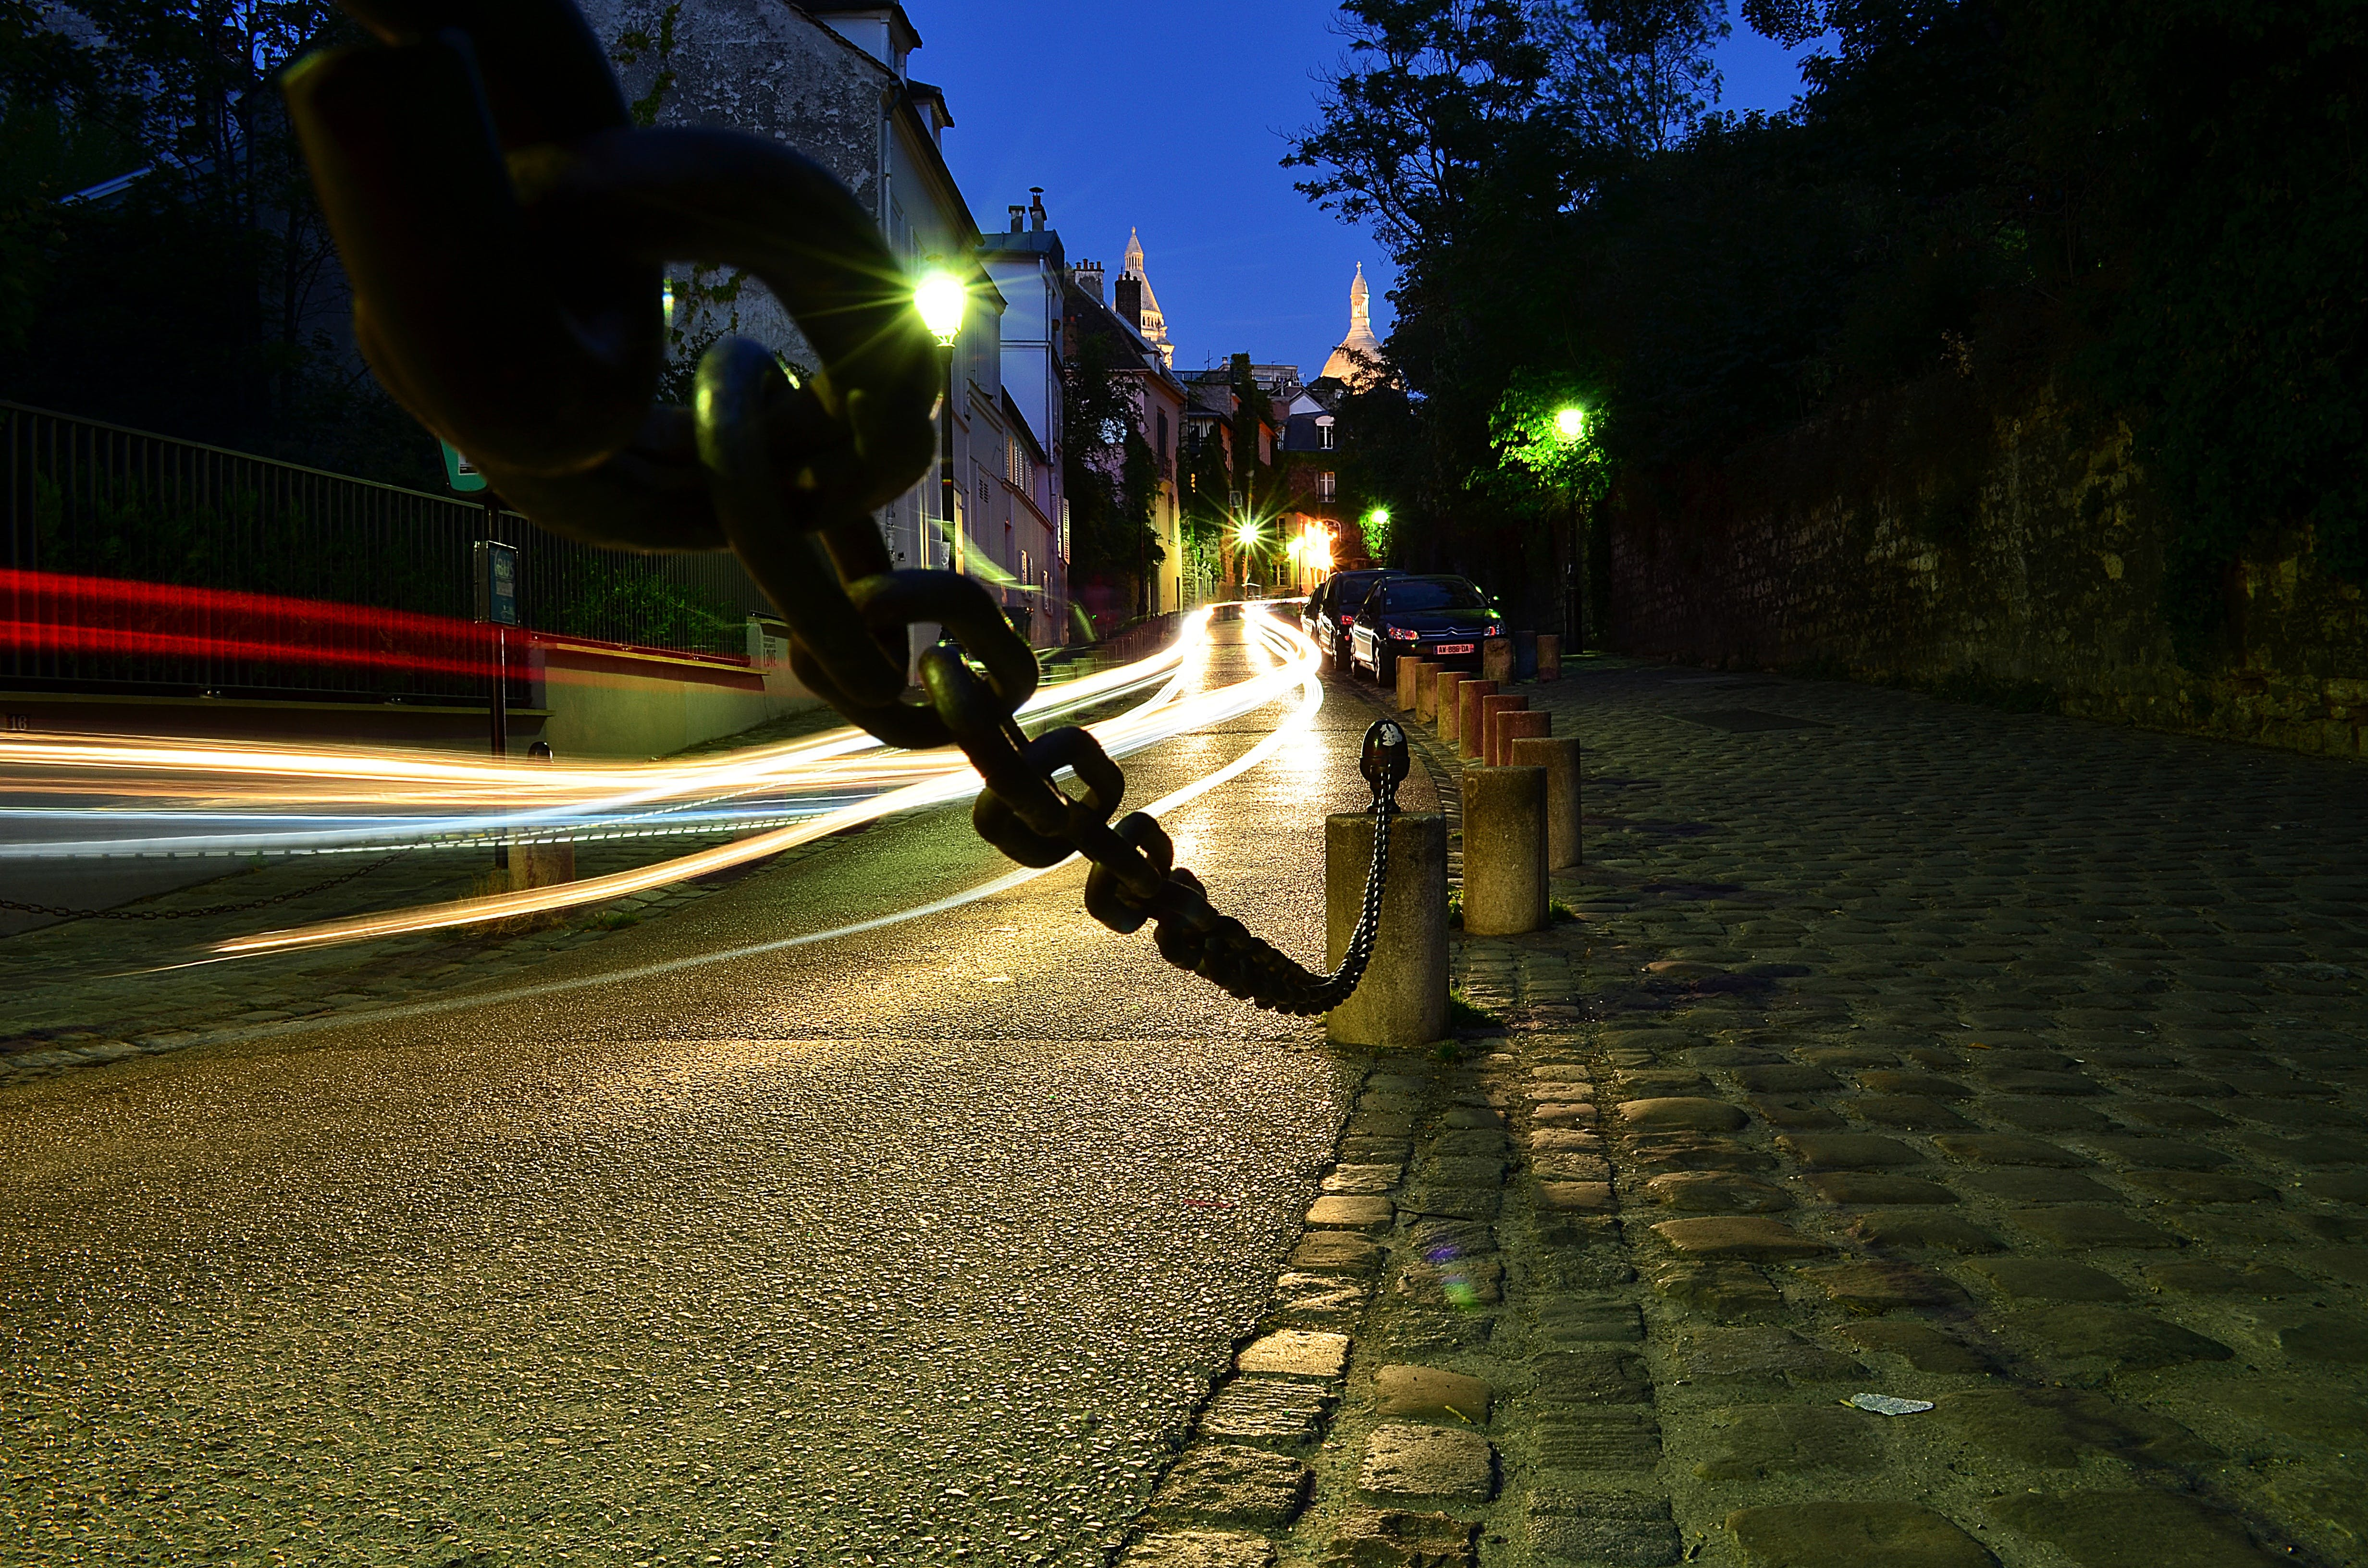 Road Time Lapse Photography